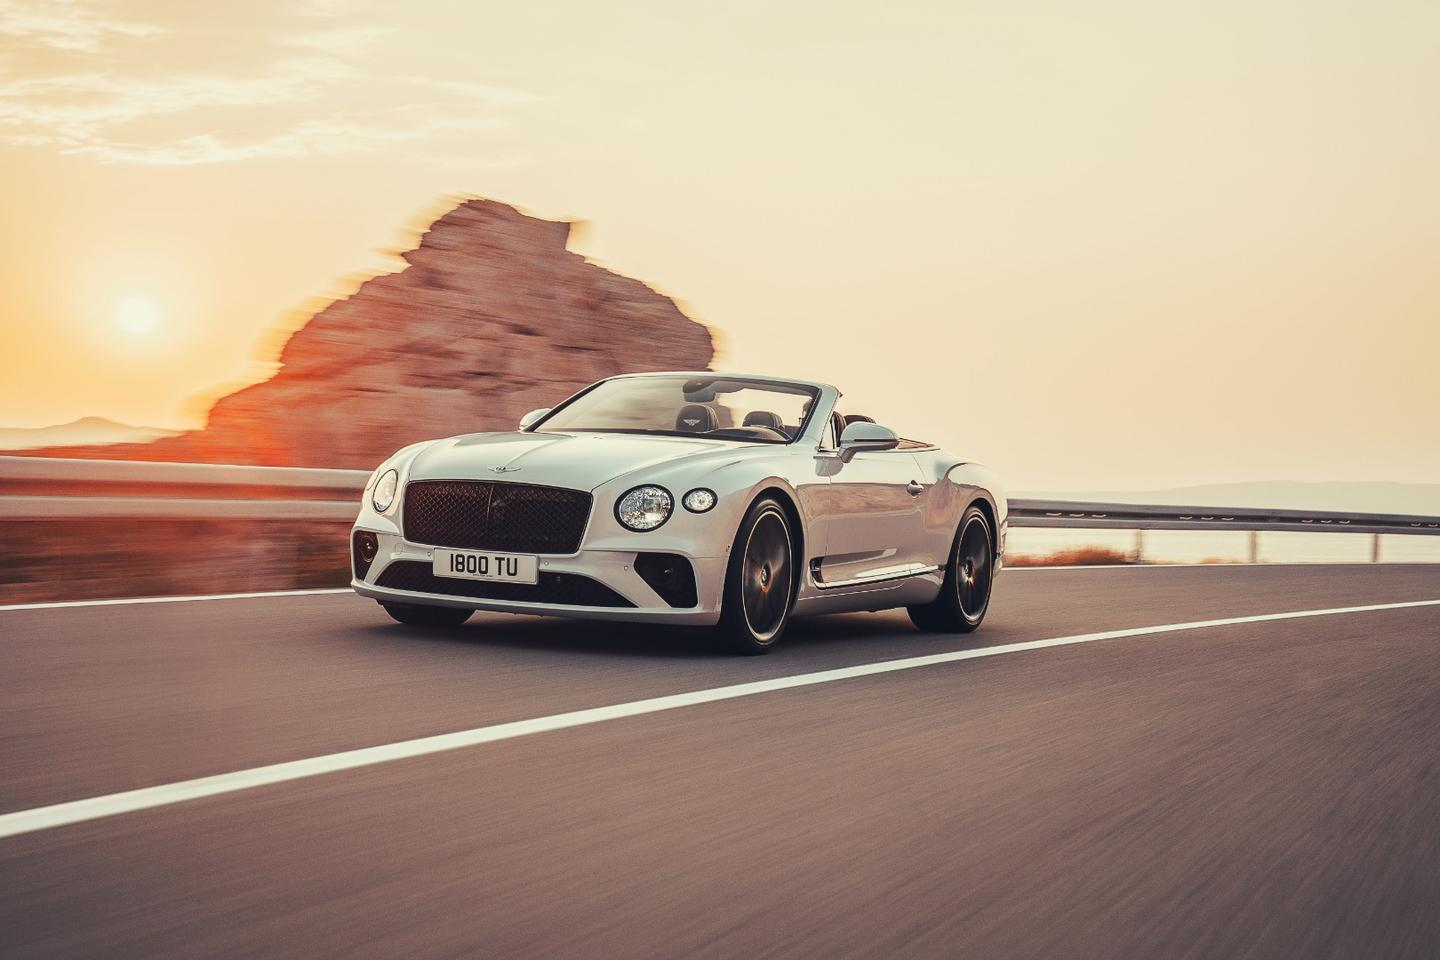 2019 Bentley Continental GT Convertible: third generation of this drop-top rocketship